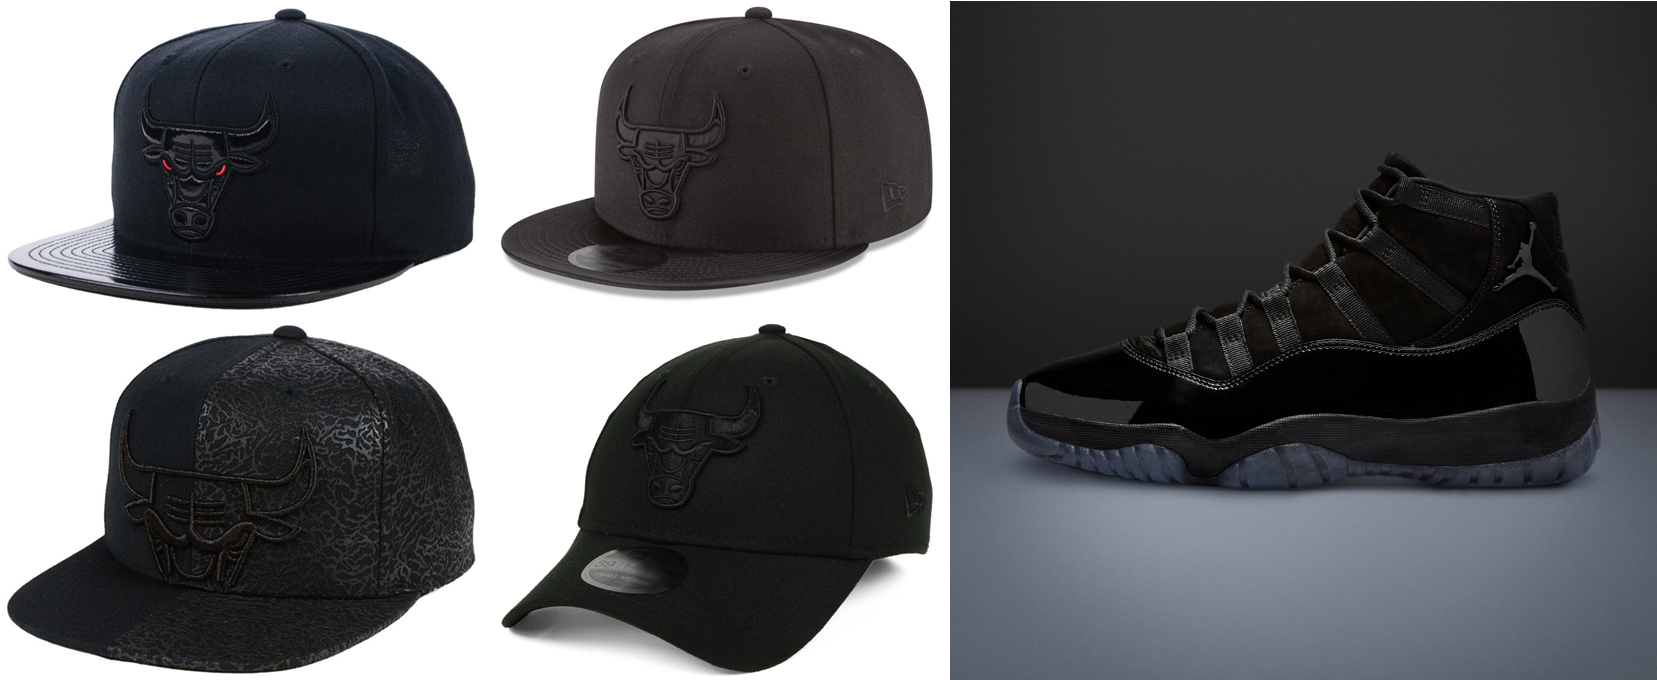 8ef411a92df Bulls Hats to Match the Jordan 11 Cap Gown | SneakerFits.com